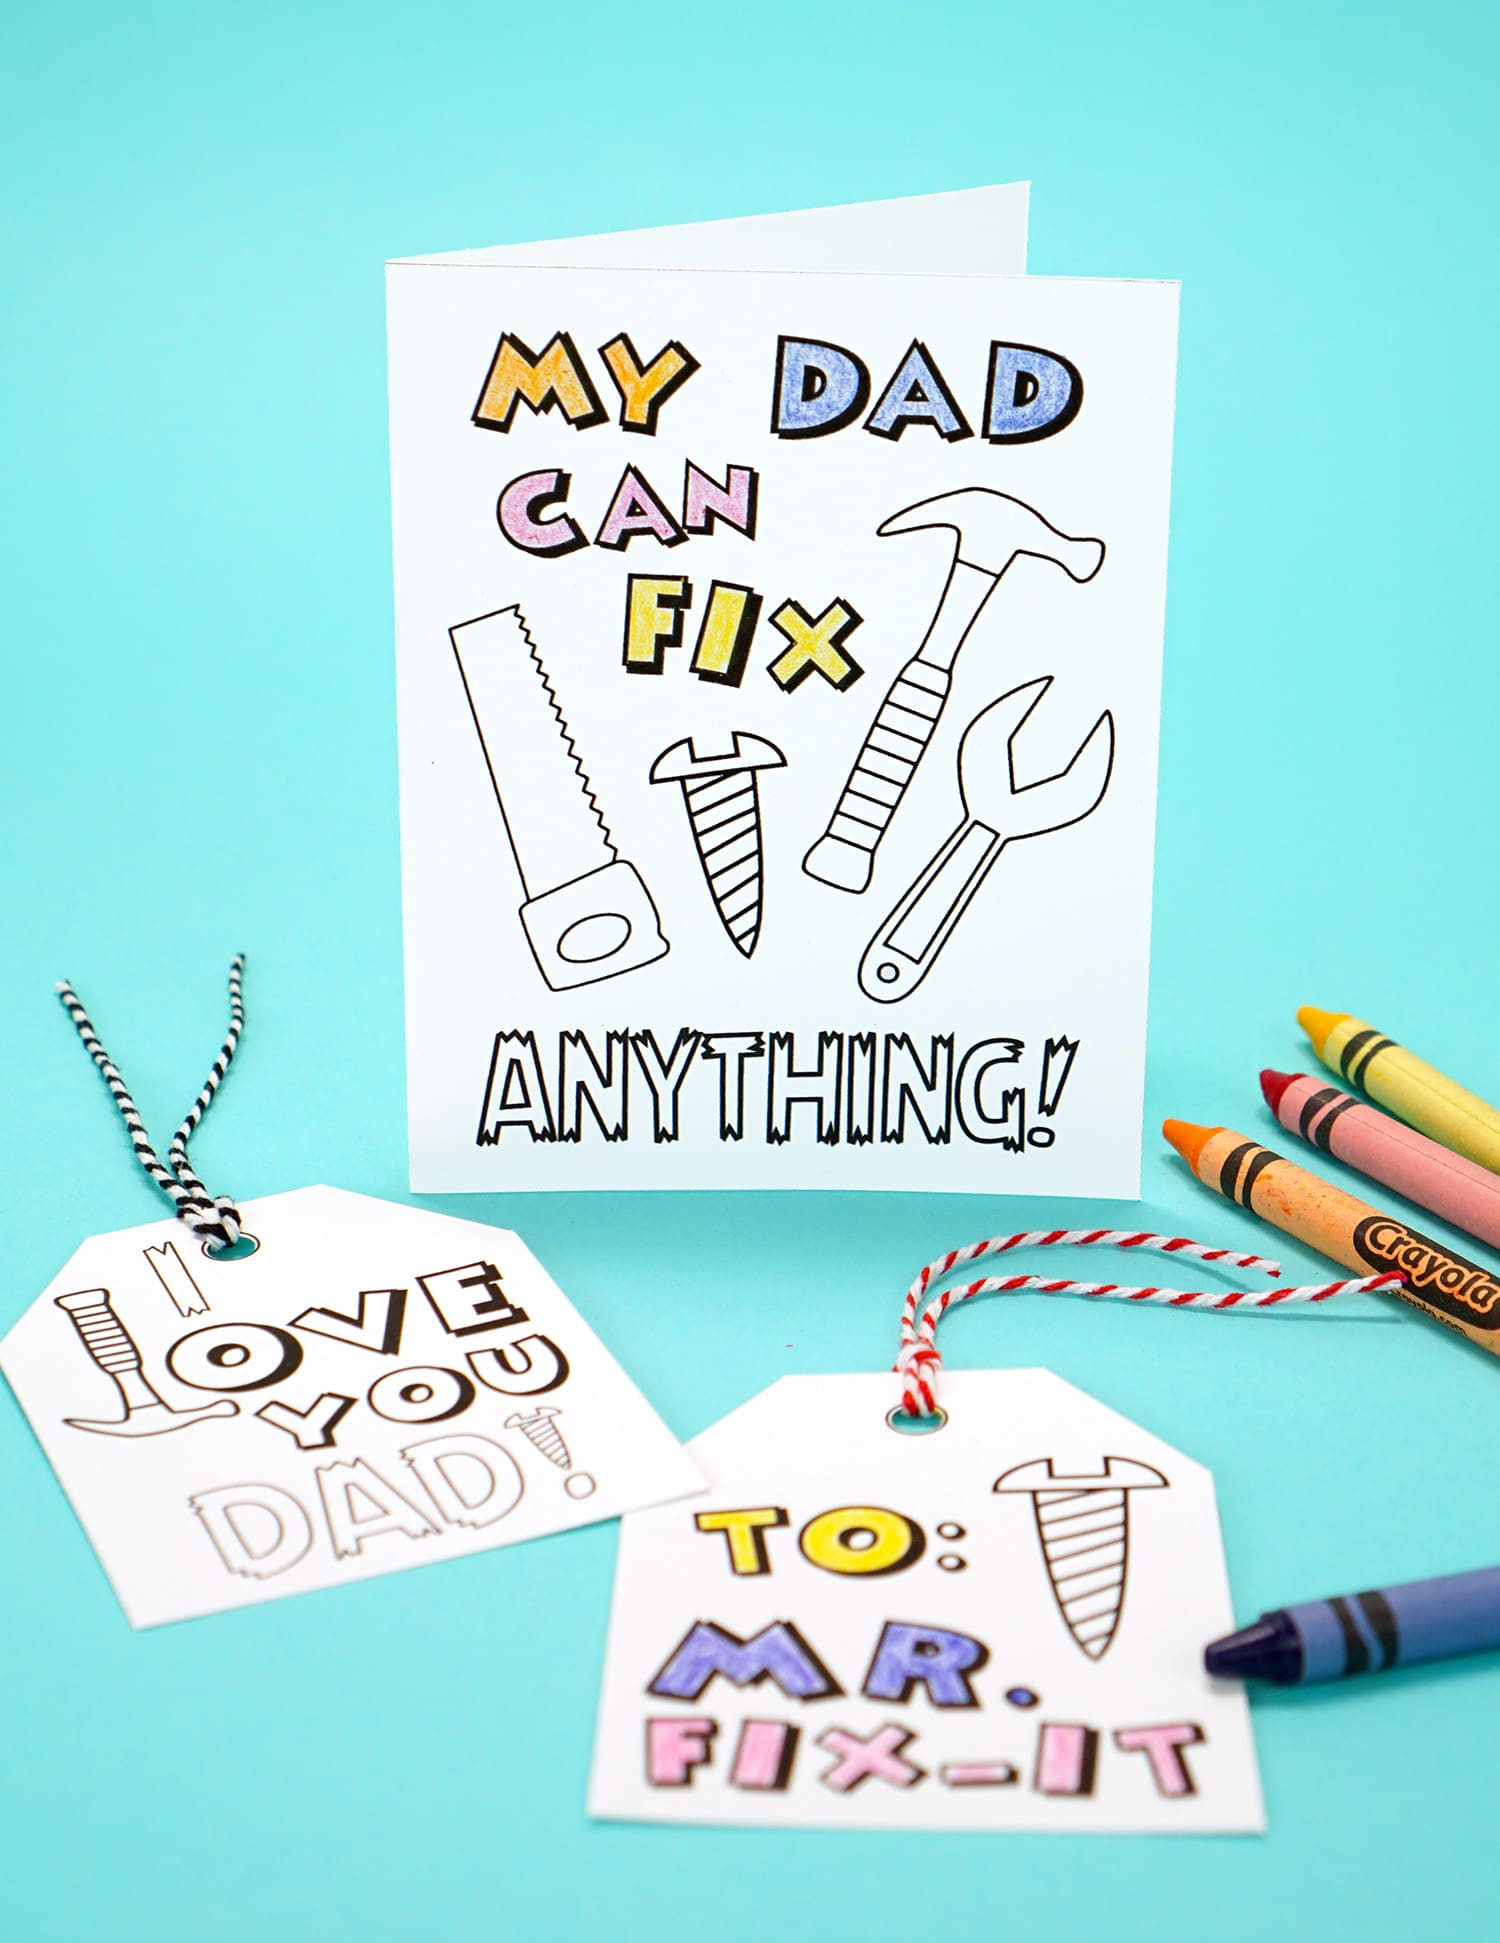 picture about Printable Fathers Day Card referred to as Printable Fathers Working day Card + Coloring Web site - Pleasure is